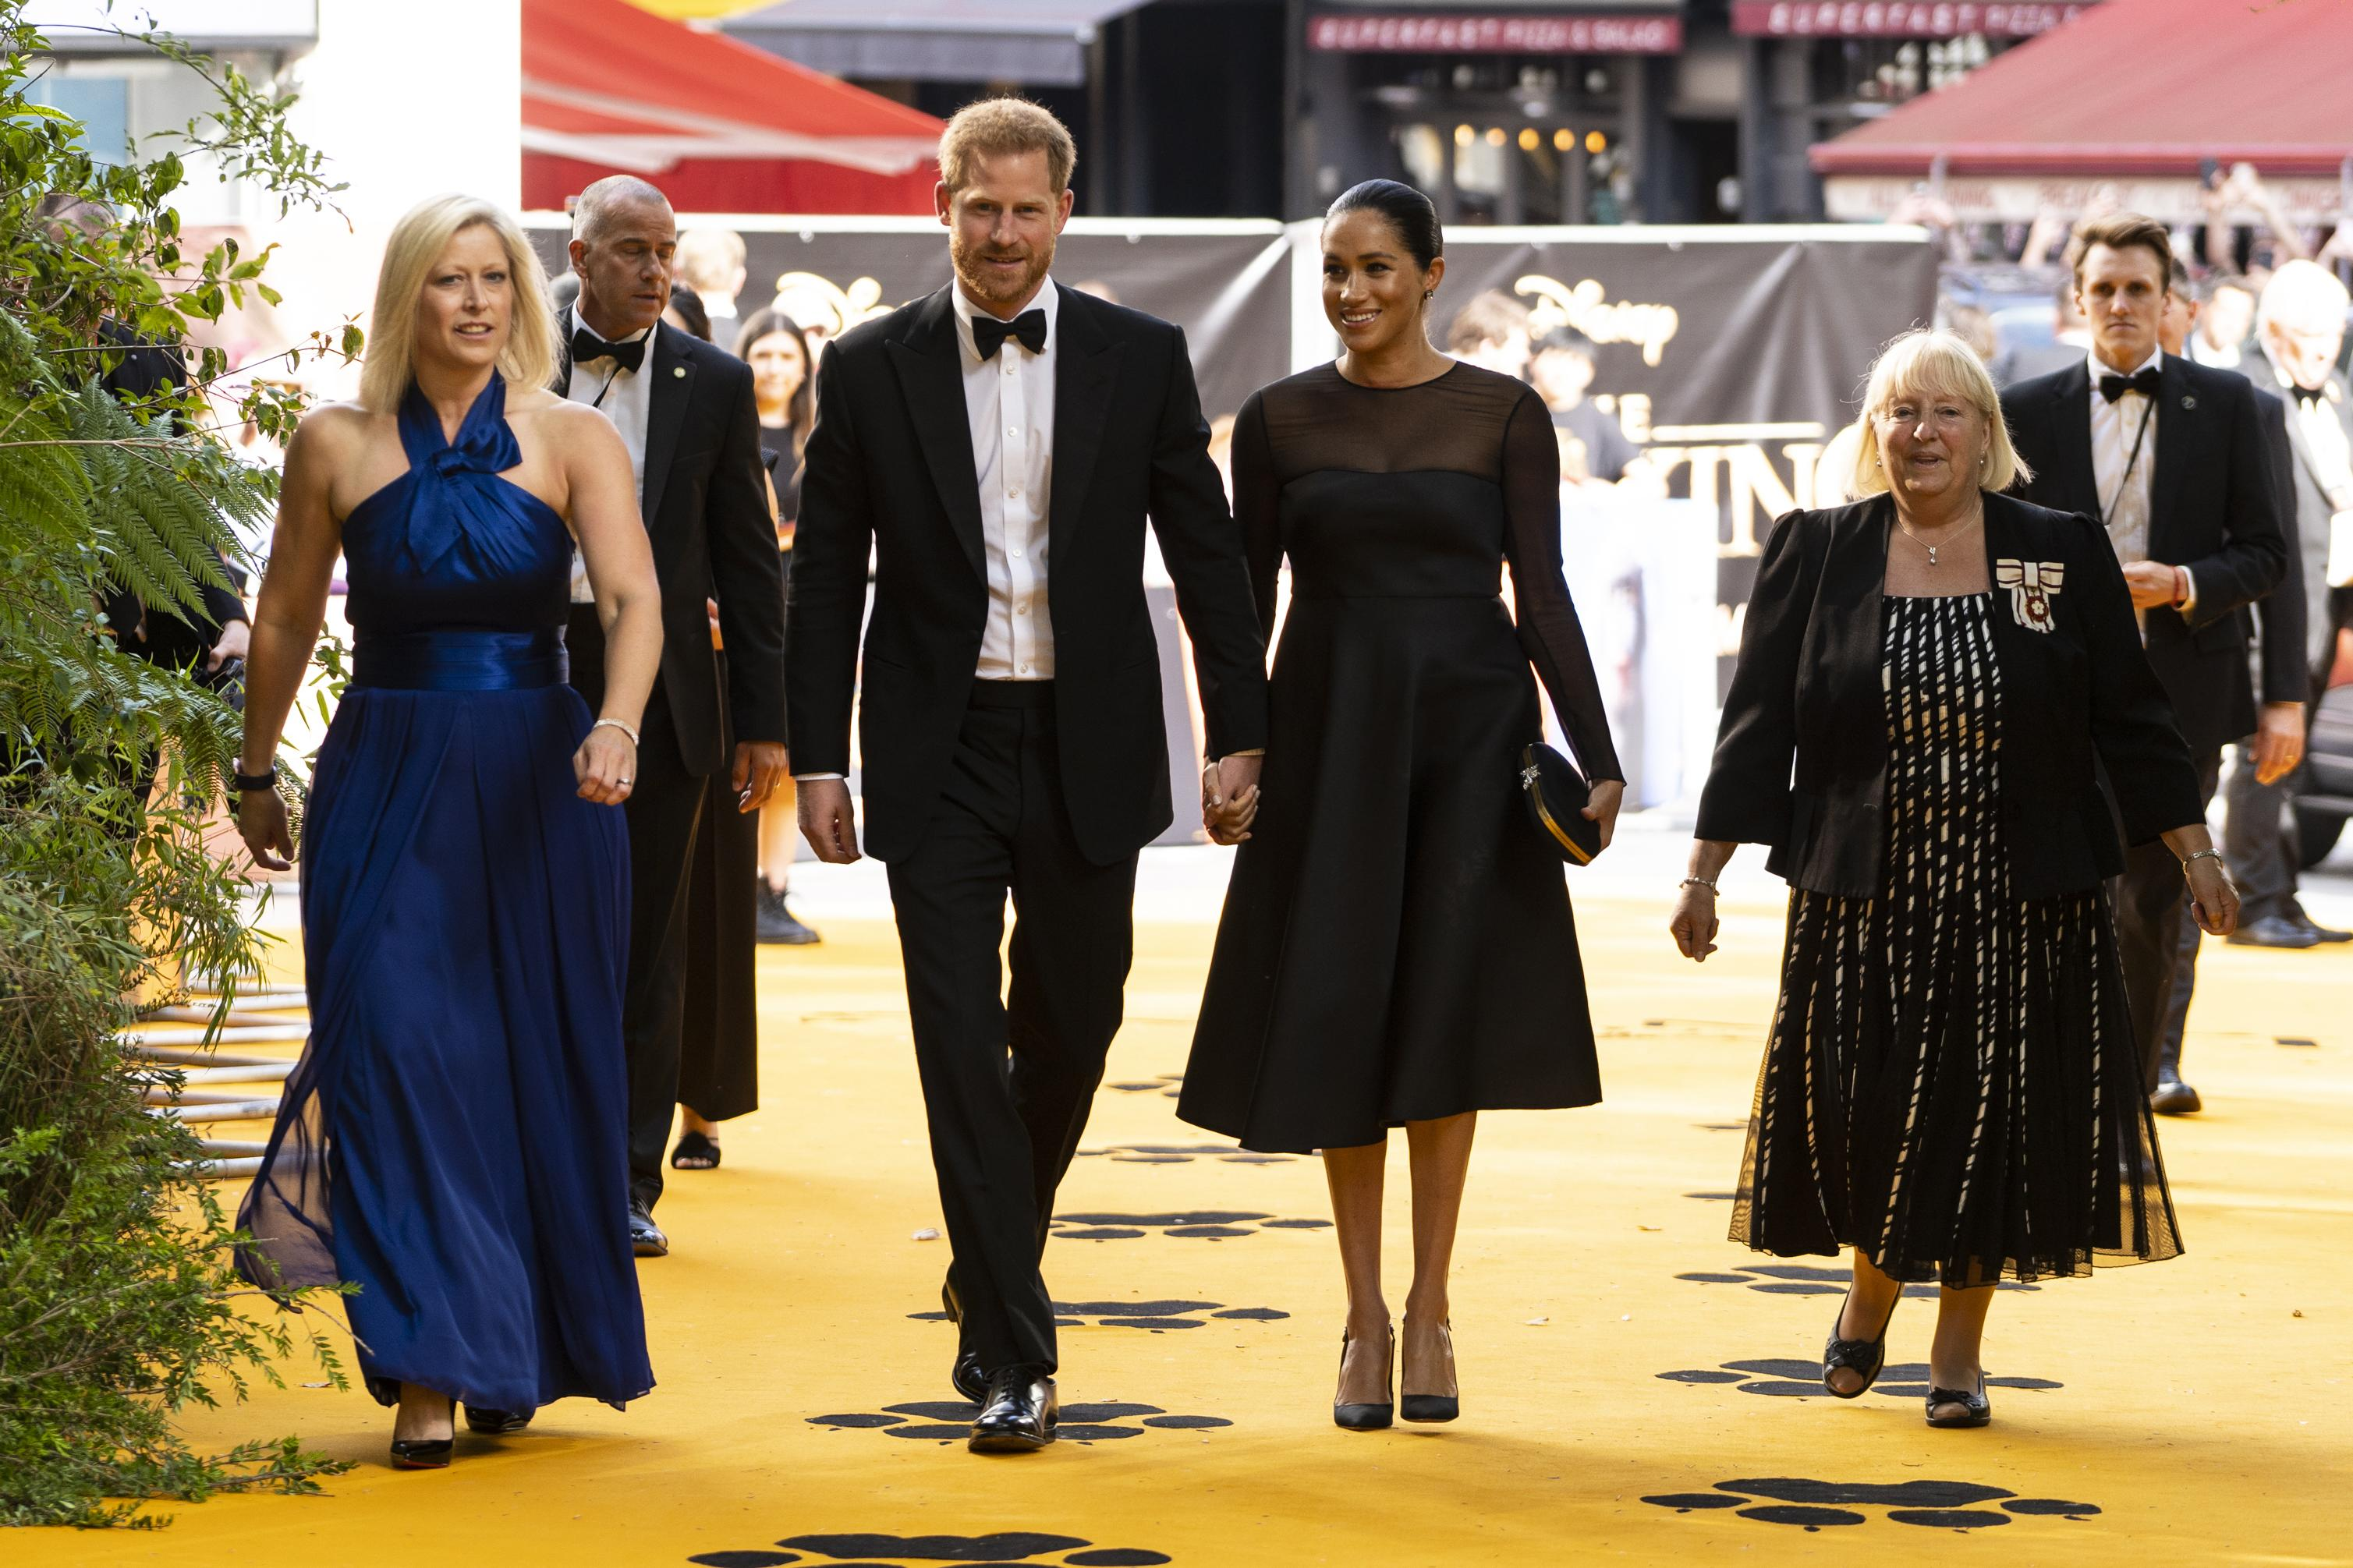 The duchess wore a black dress and heels with her hair swept up.